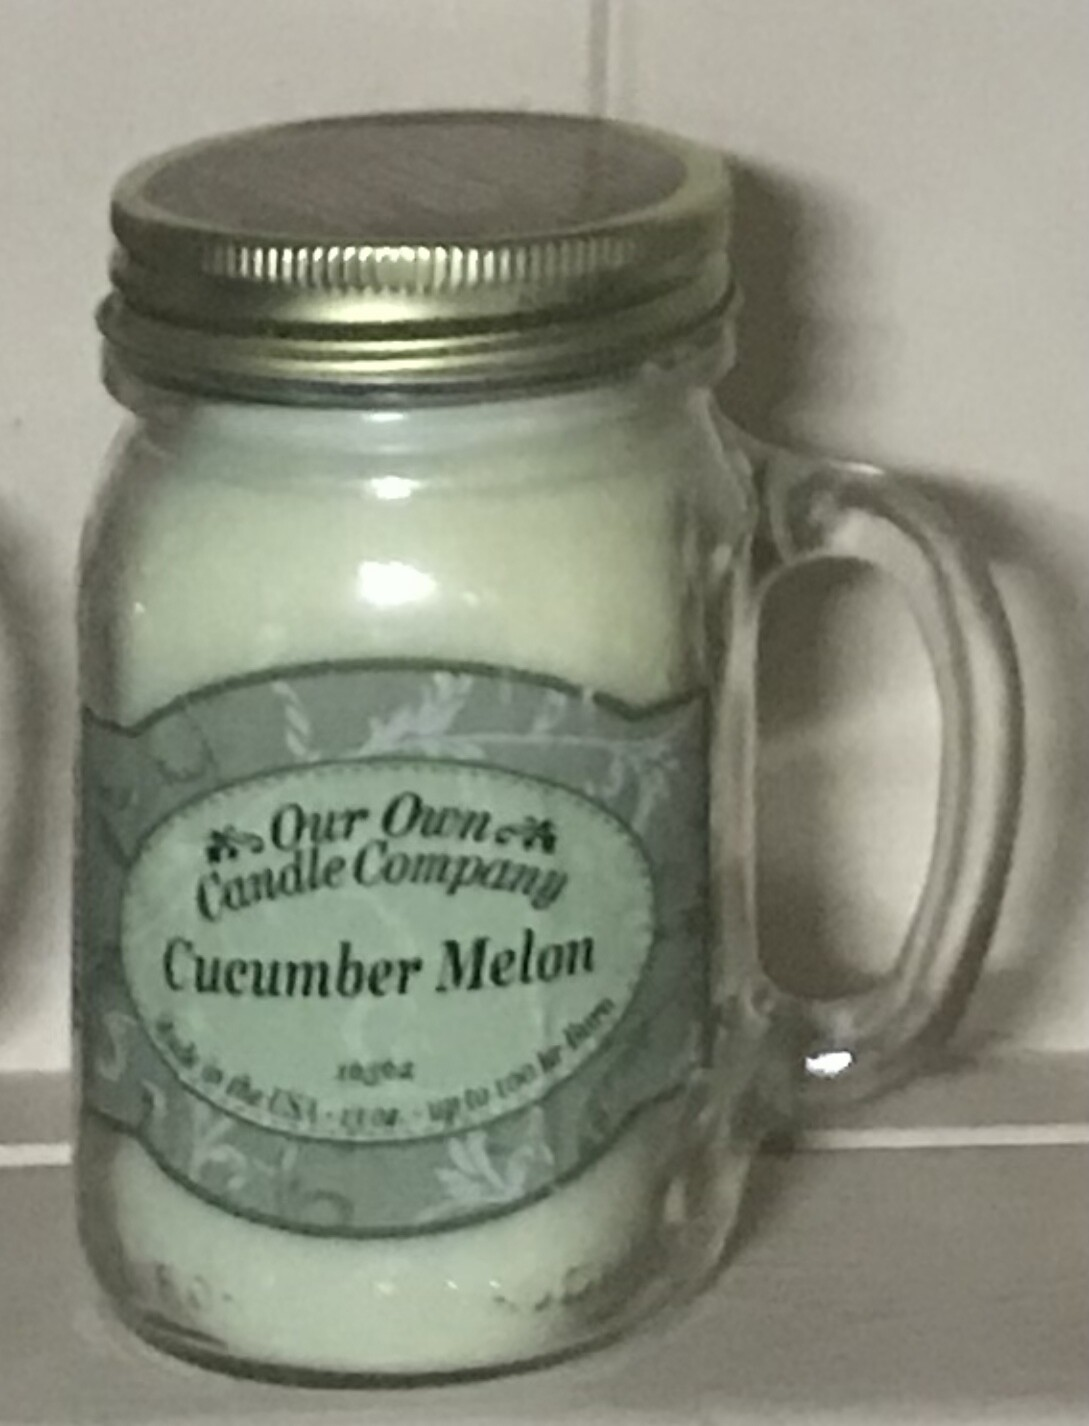 Our Own Candle Company - Cucumber Melon